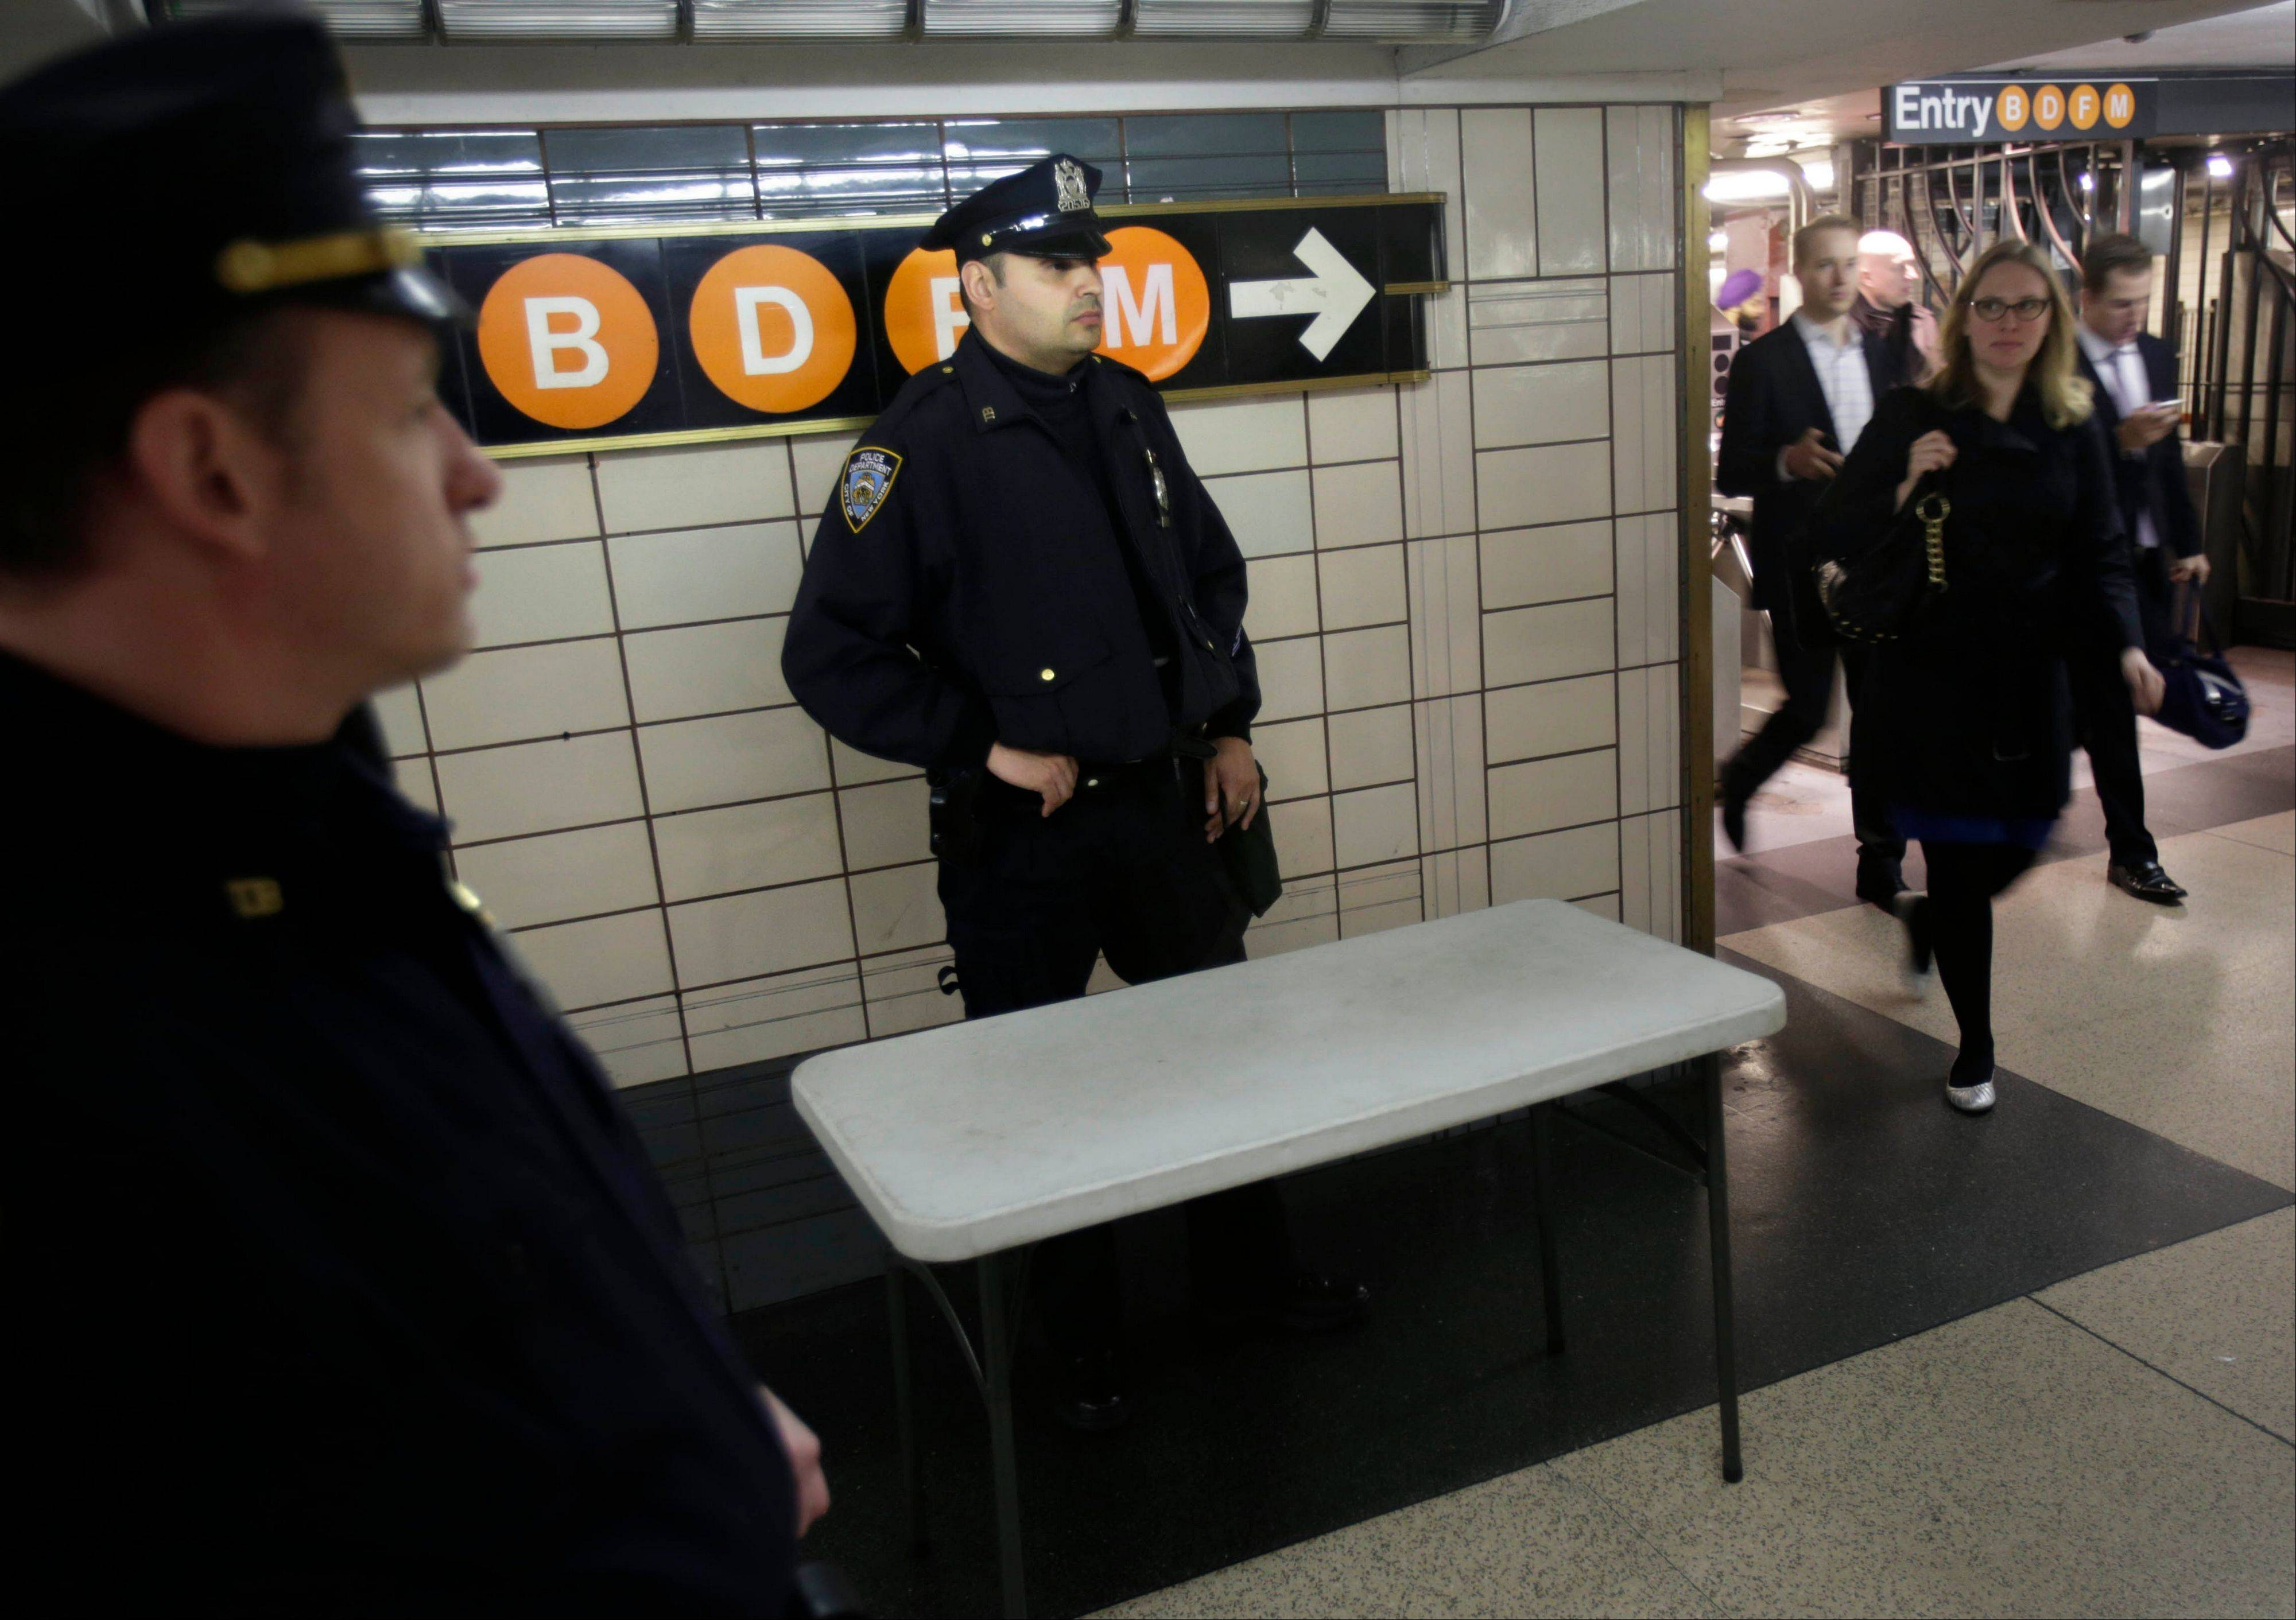 Police officers keep an eye on commuters in a subway station in New York, Tuesday, April 16, 2013. Police armed with rifles and extra patrol cars were stationed around the city Tuesday as New York remained in a heightened state of alert until more is known about the bombings at the Boston Marathon.